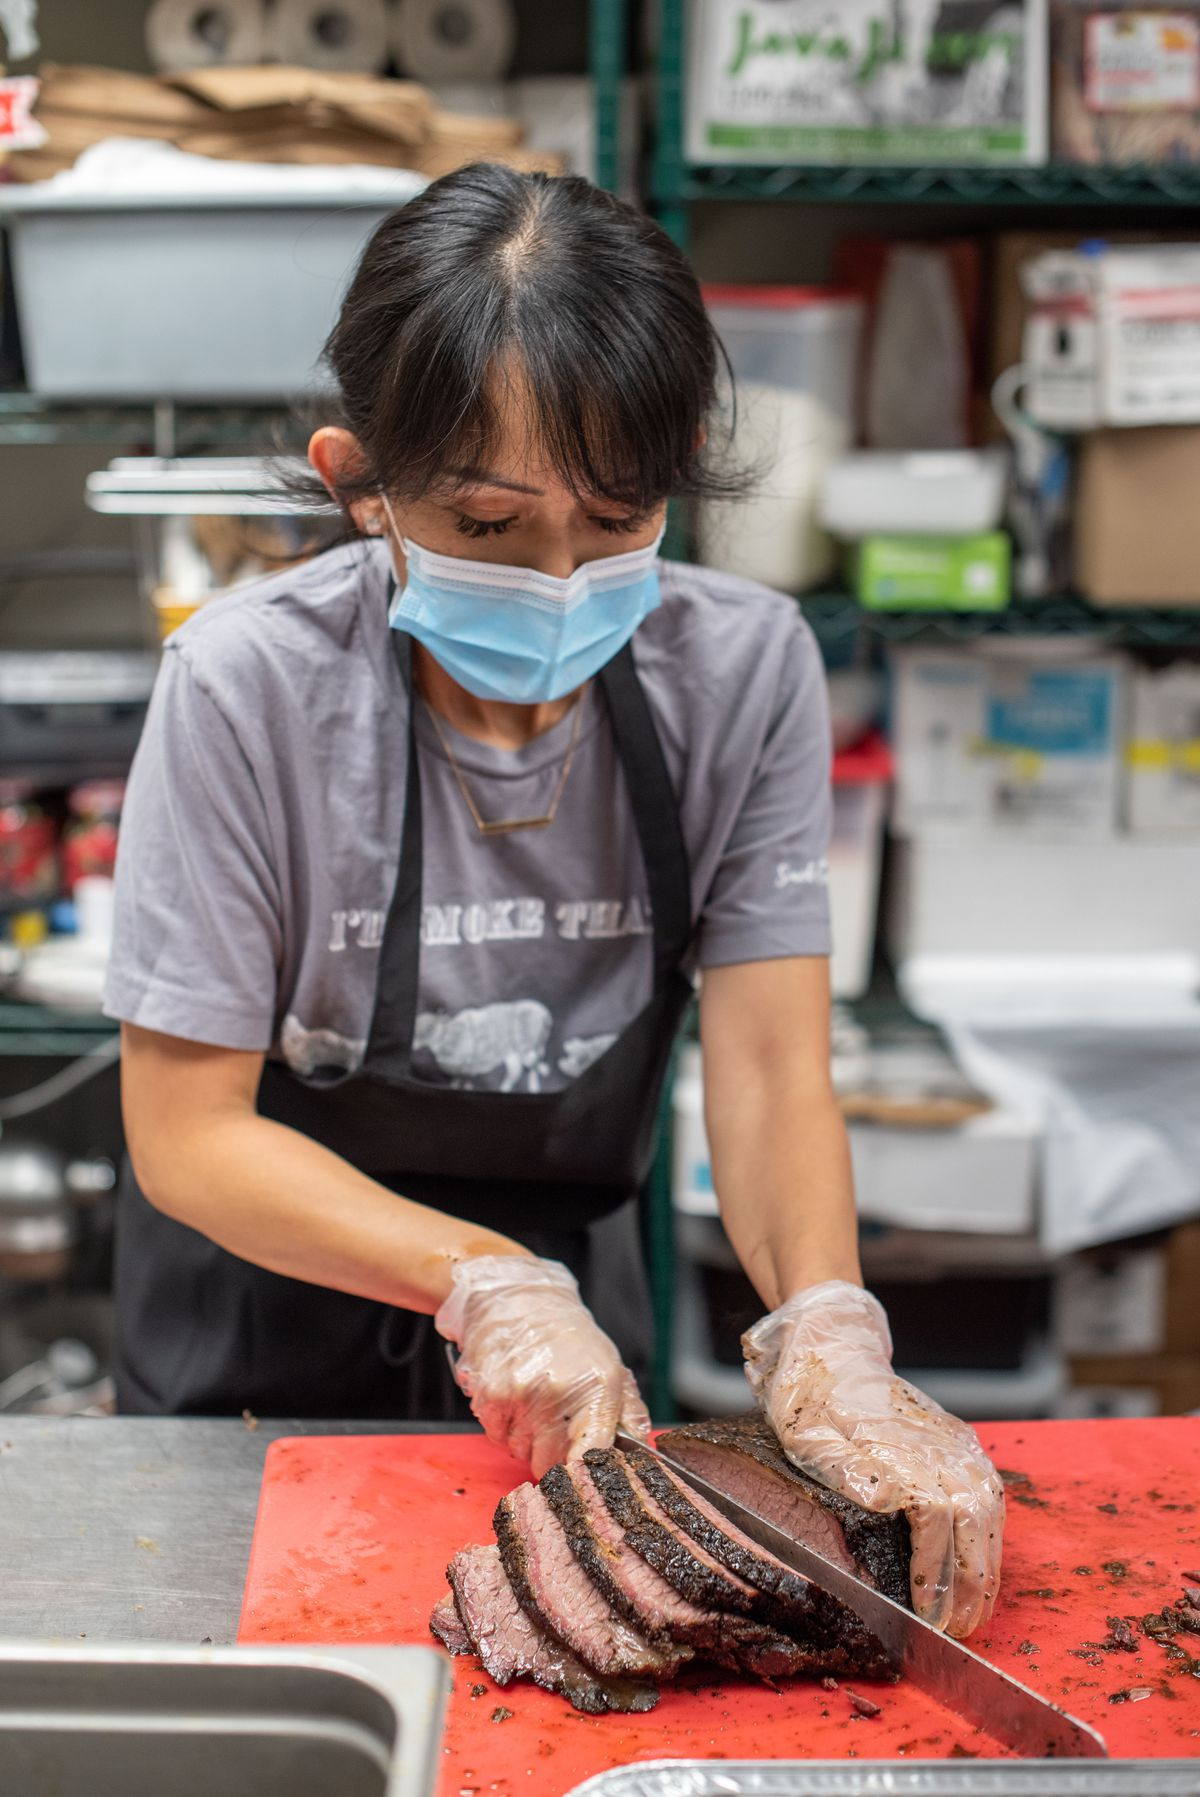 A woman in a blue mask cuts thick slices of brisket on a red cutting board.